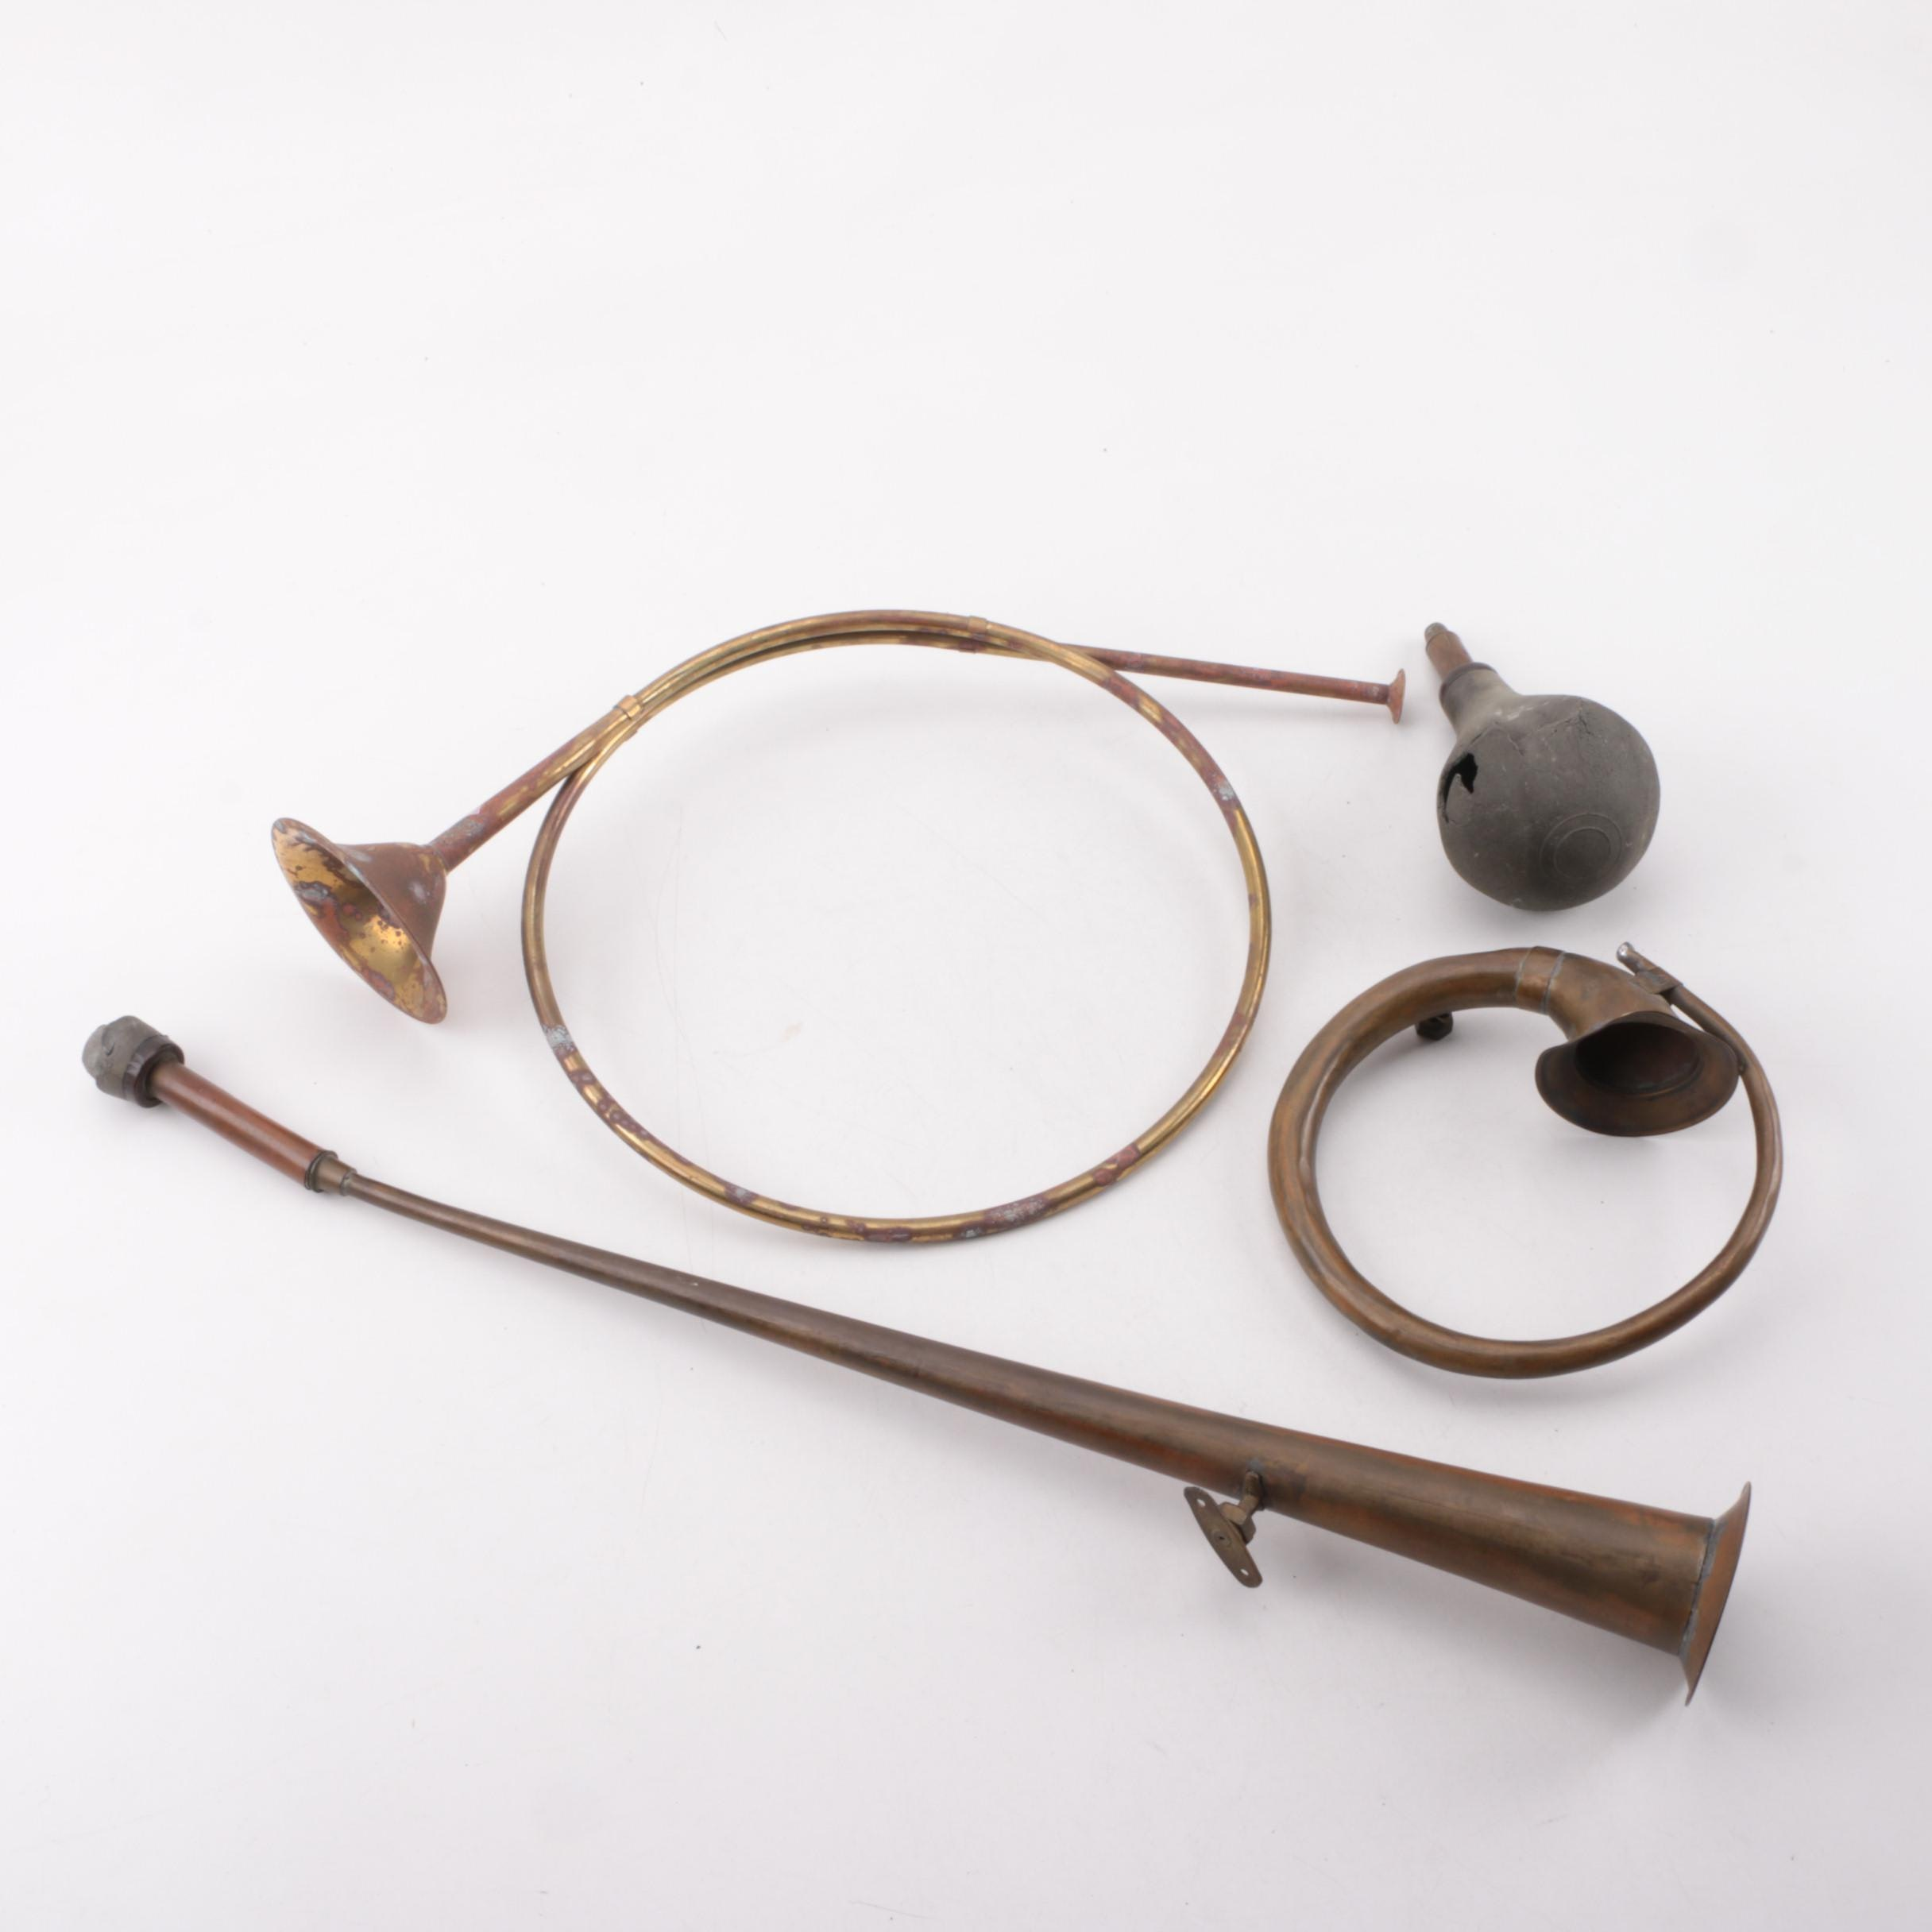 Vintage Brass Hunting and Car Horns